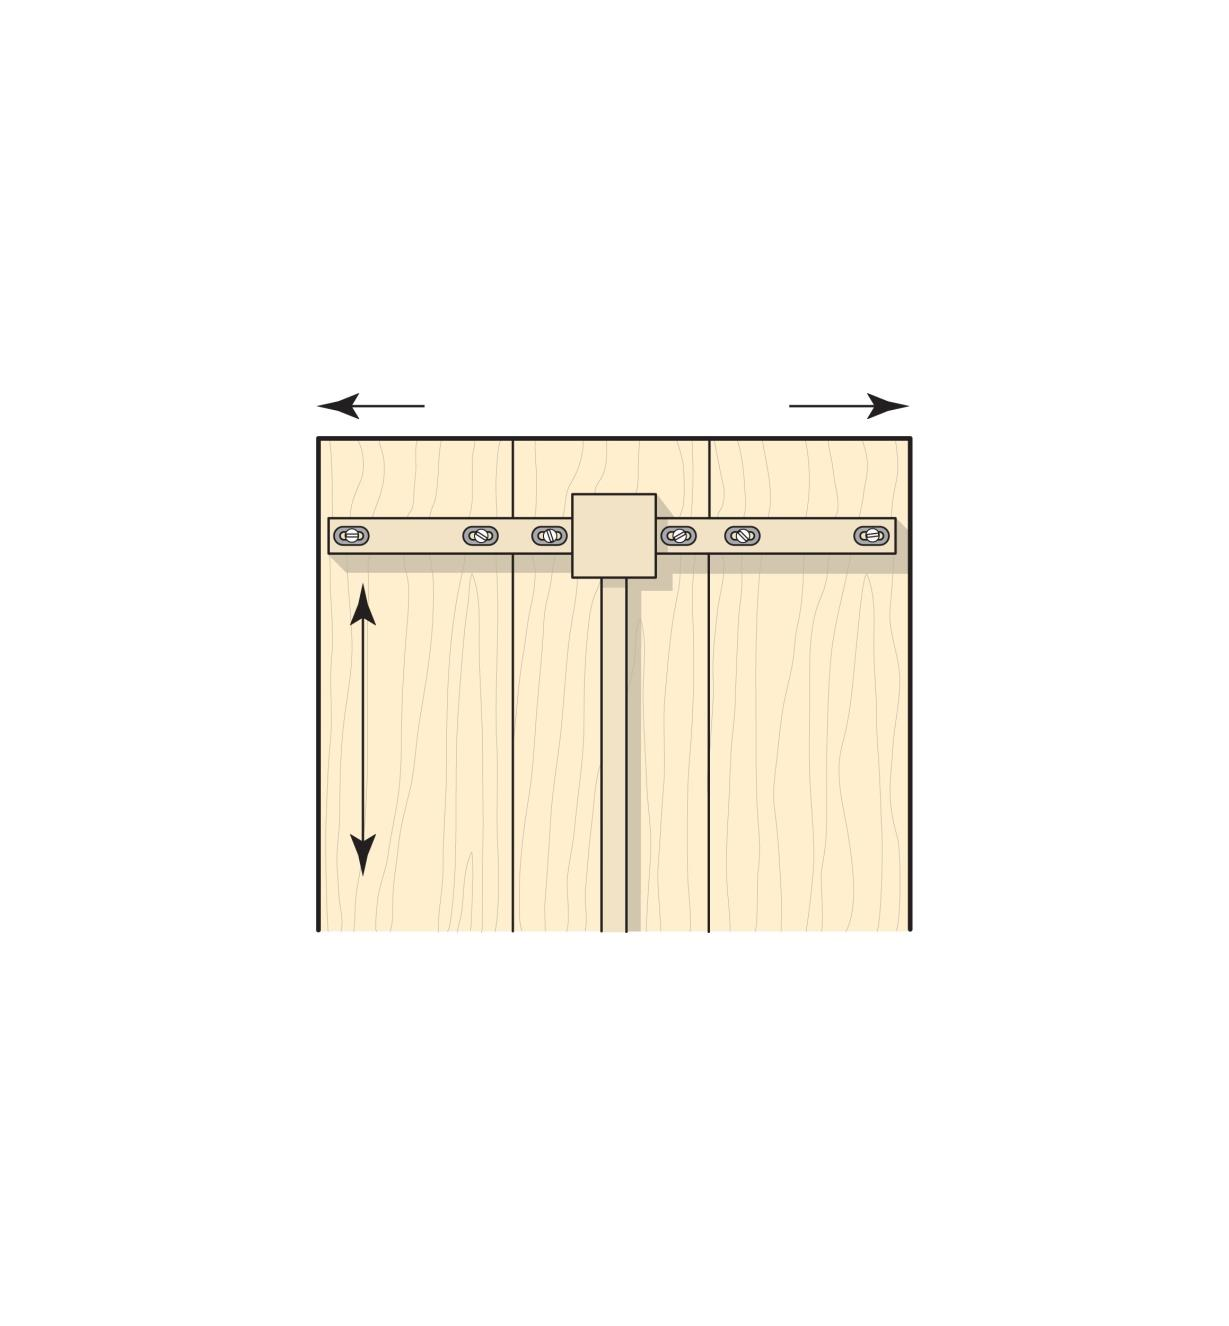 Illustration of Expansion Washers being used to attach a trestle table top base